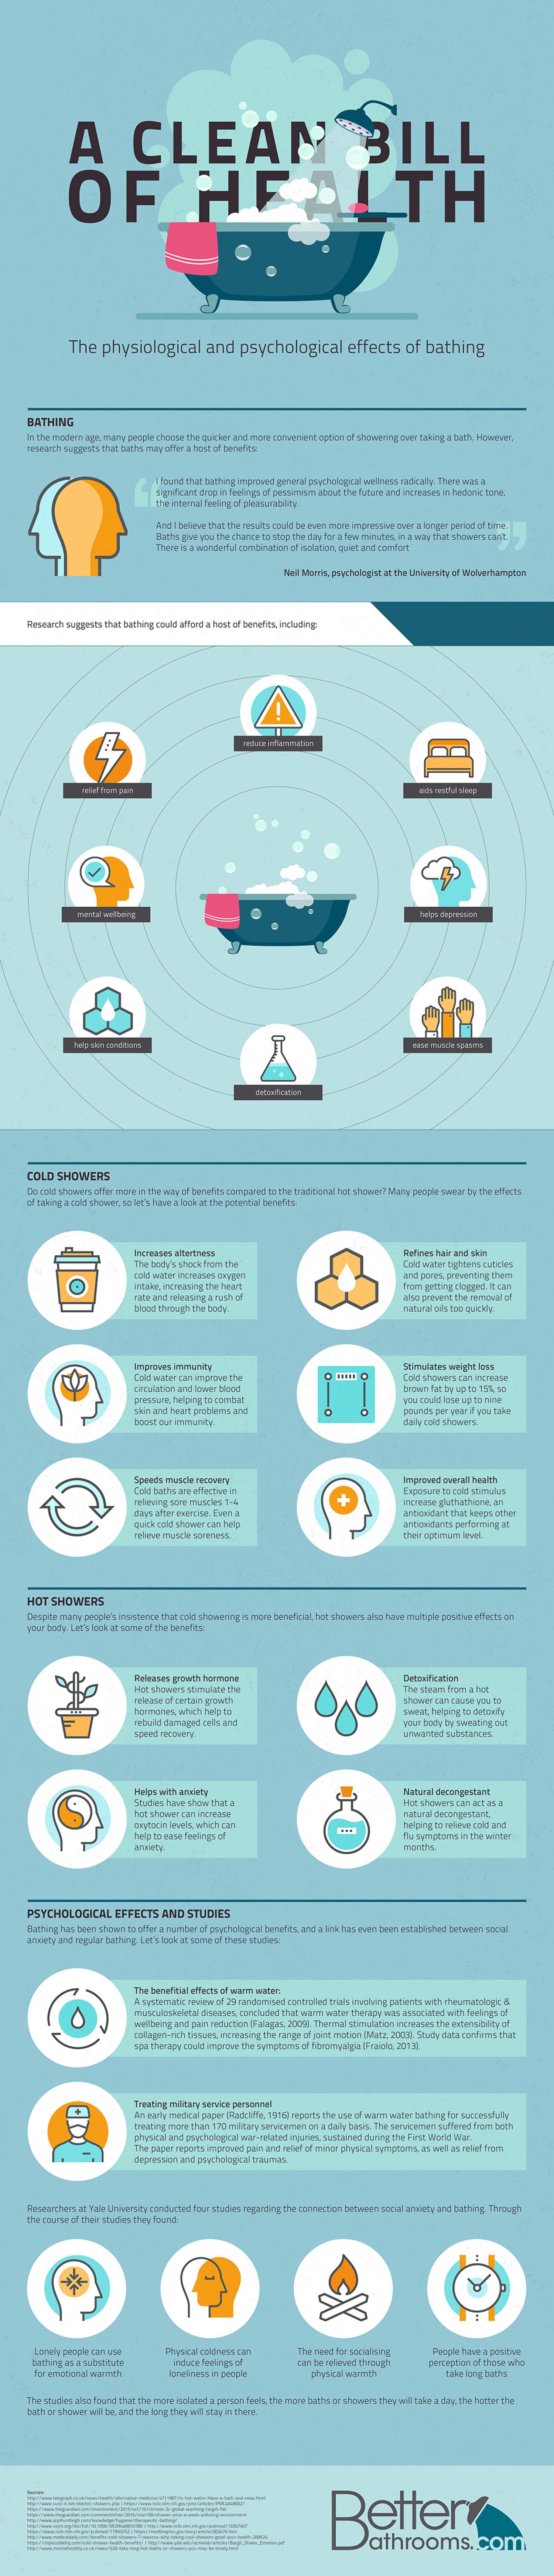 A Clean Bill of Health: The Physiological and Psychological Effects of Bathing Infographic